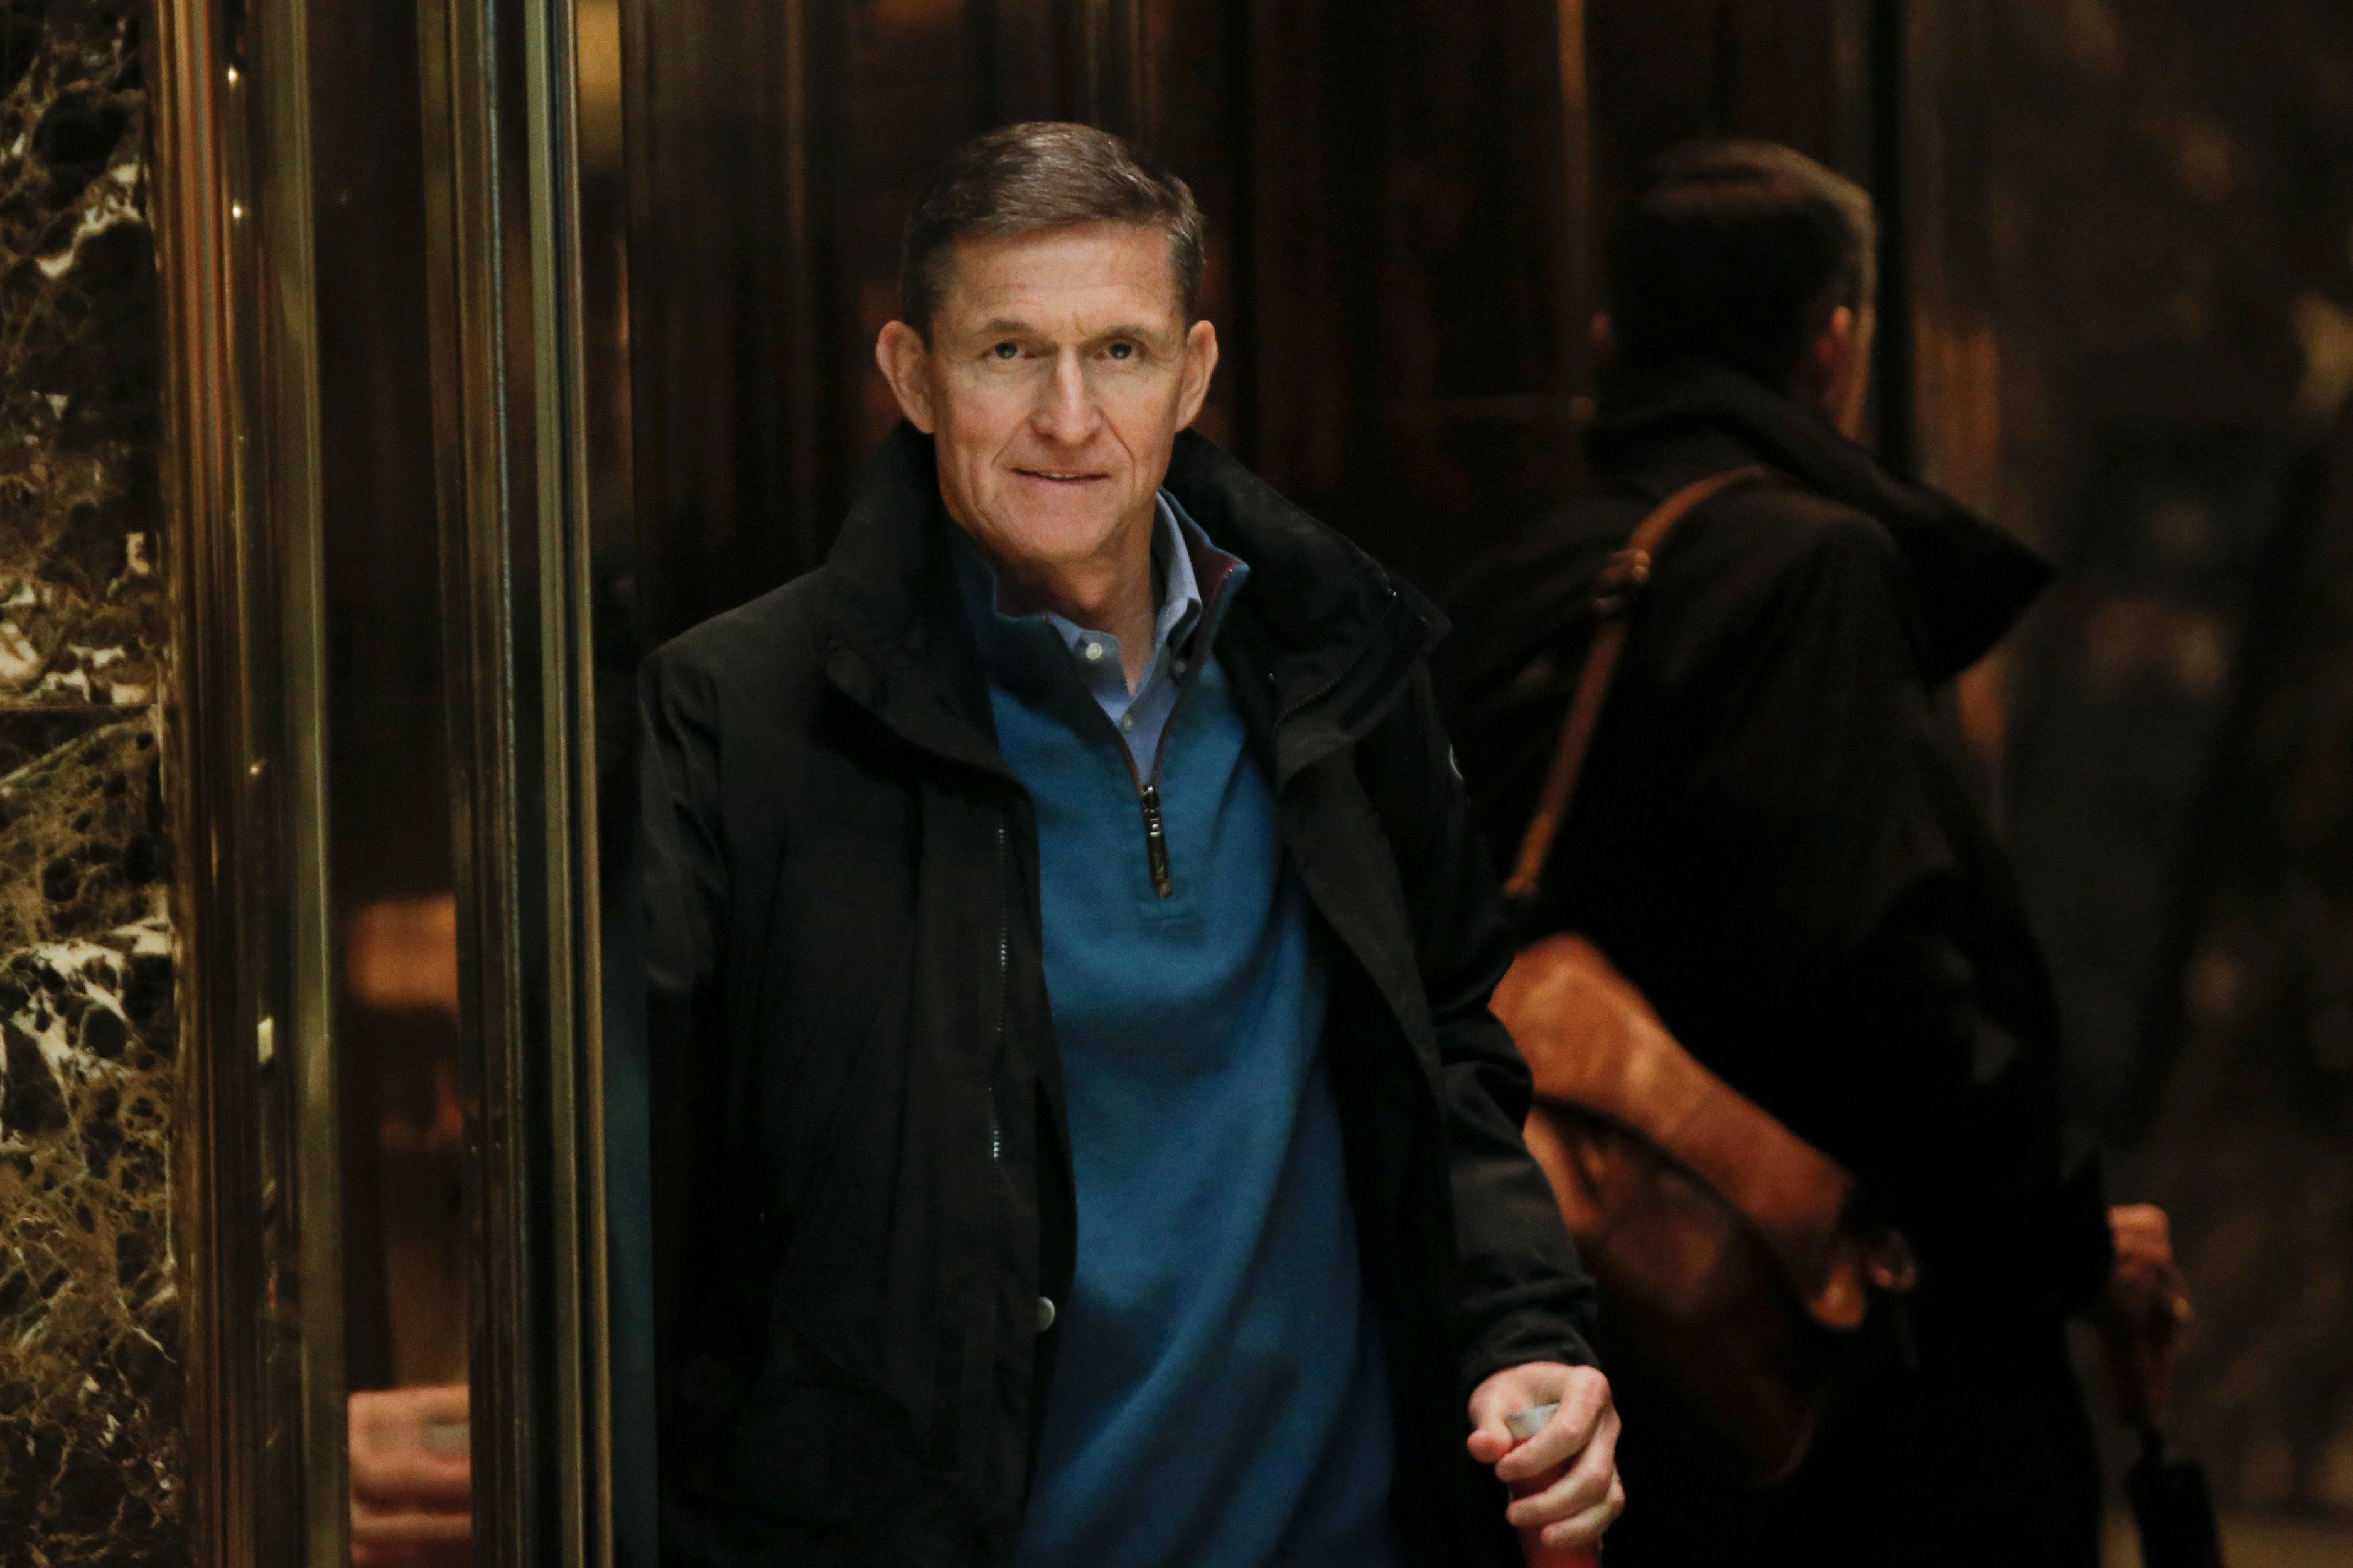 Retired Lt. Gen. Michael Flynn boards an elevator as he arrives at Trump Tower in New York City on Nov....